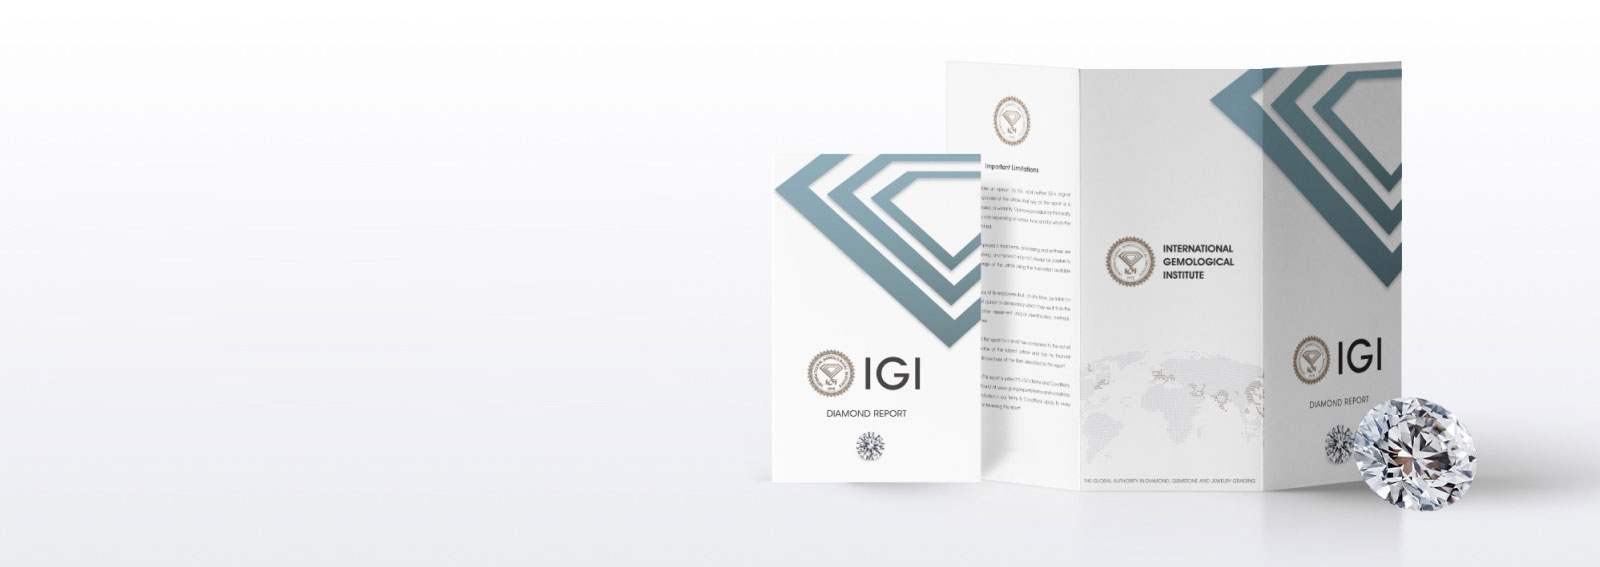 The New IGI Diamond Report